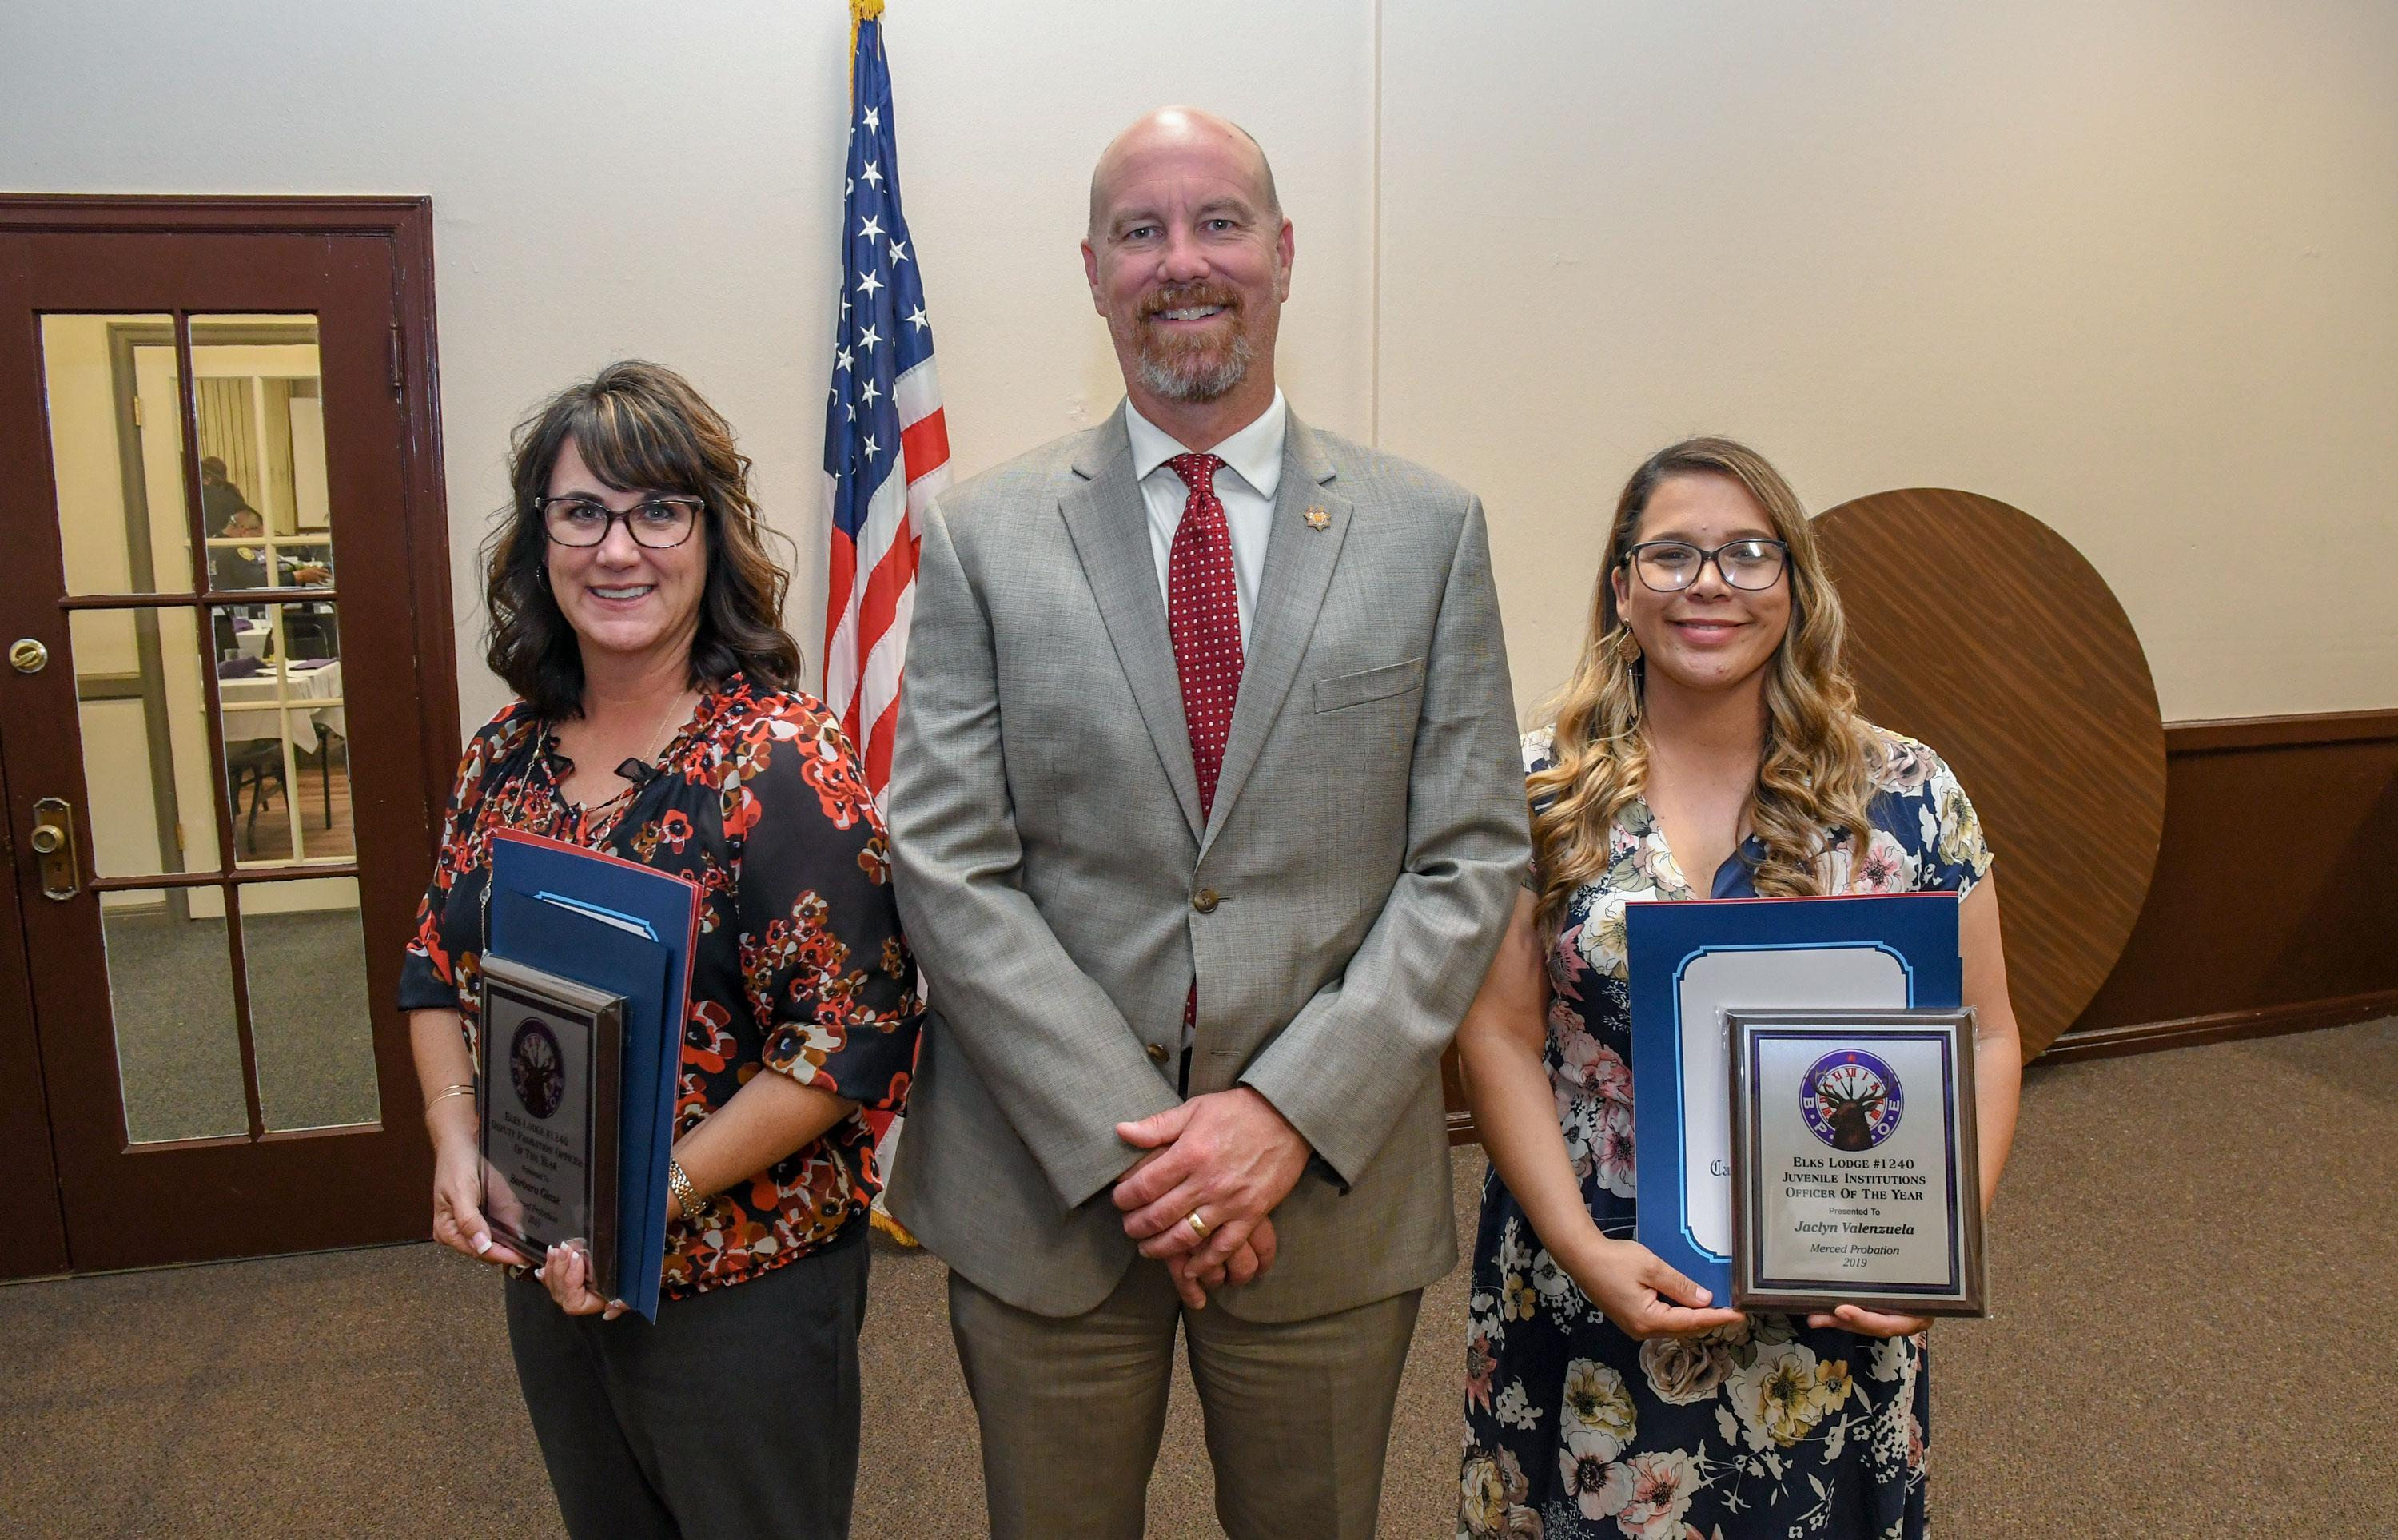 2019 Merced County Law Enforcement Officer of the Year Awards